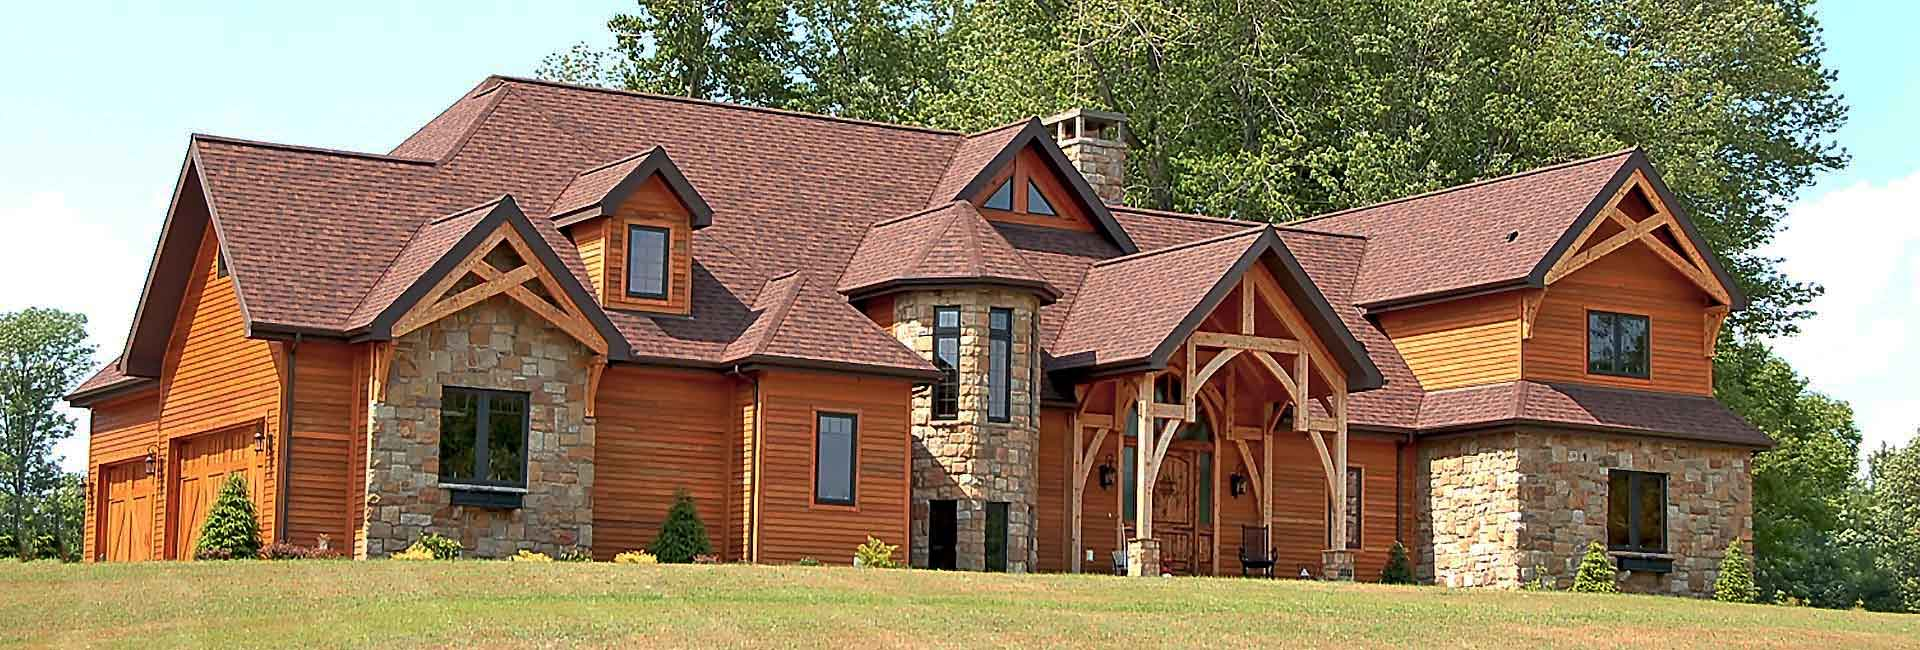 custom timber frame home builder